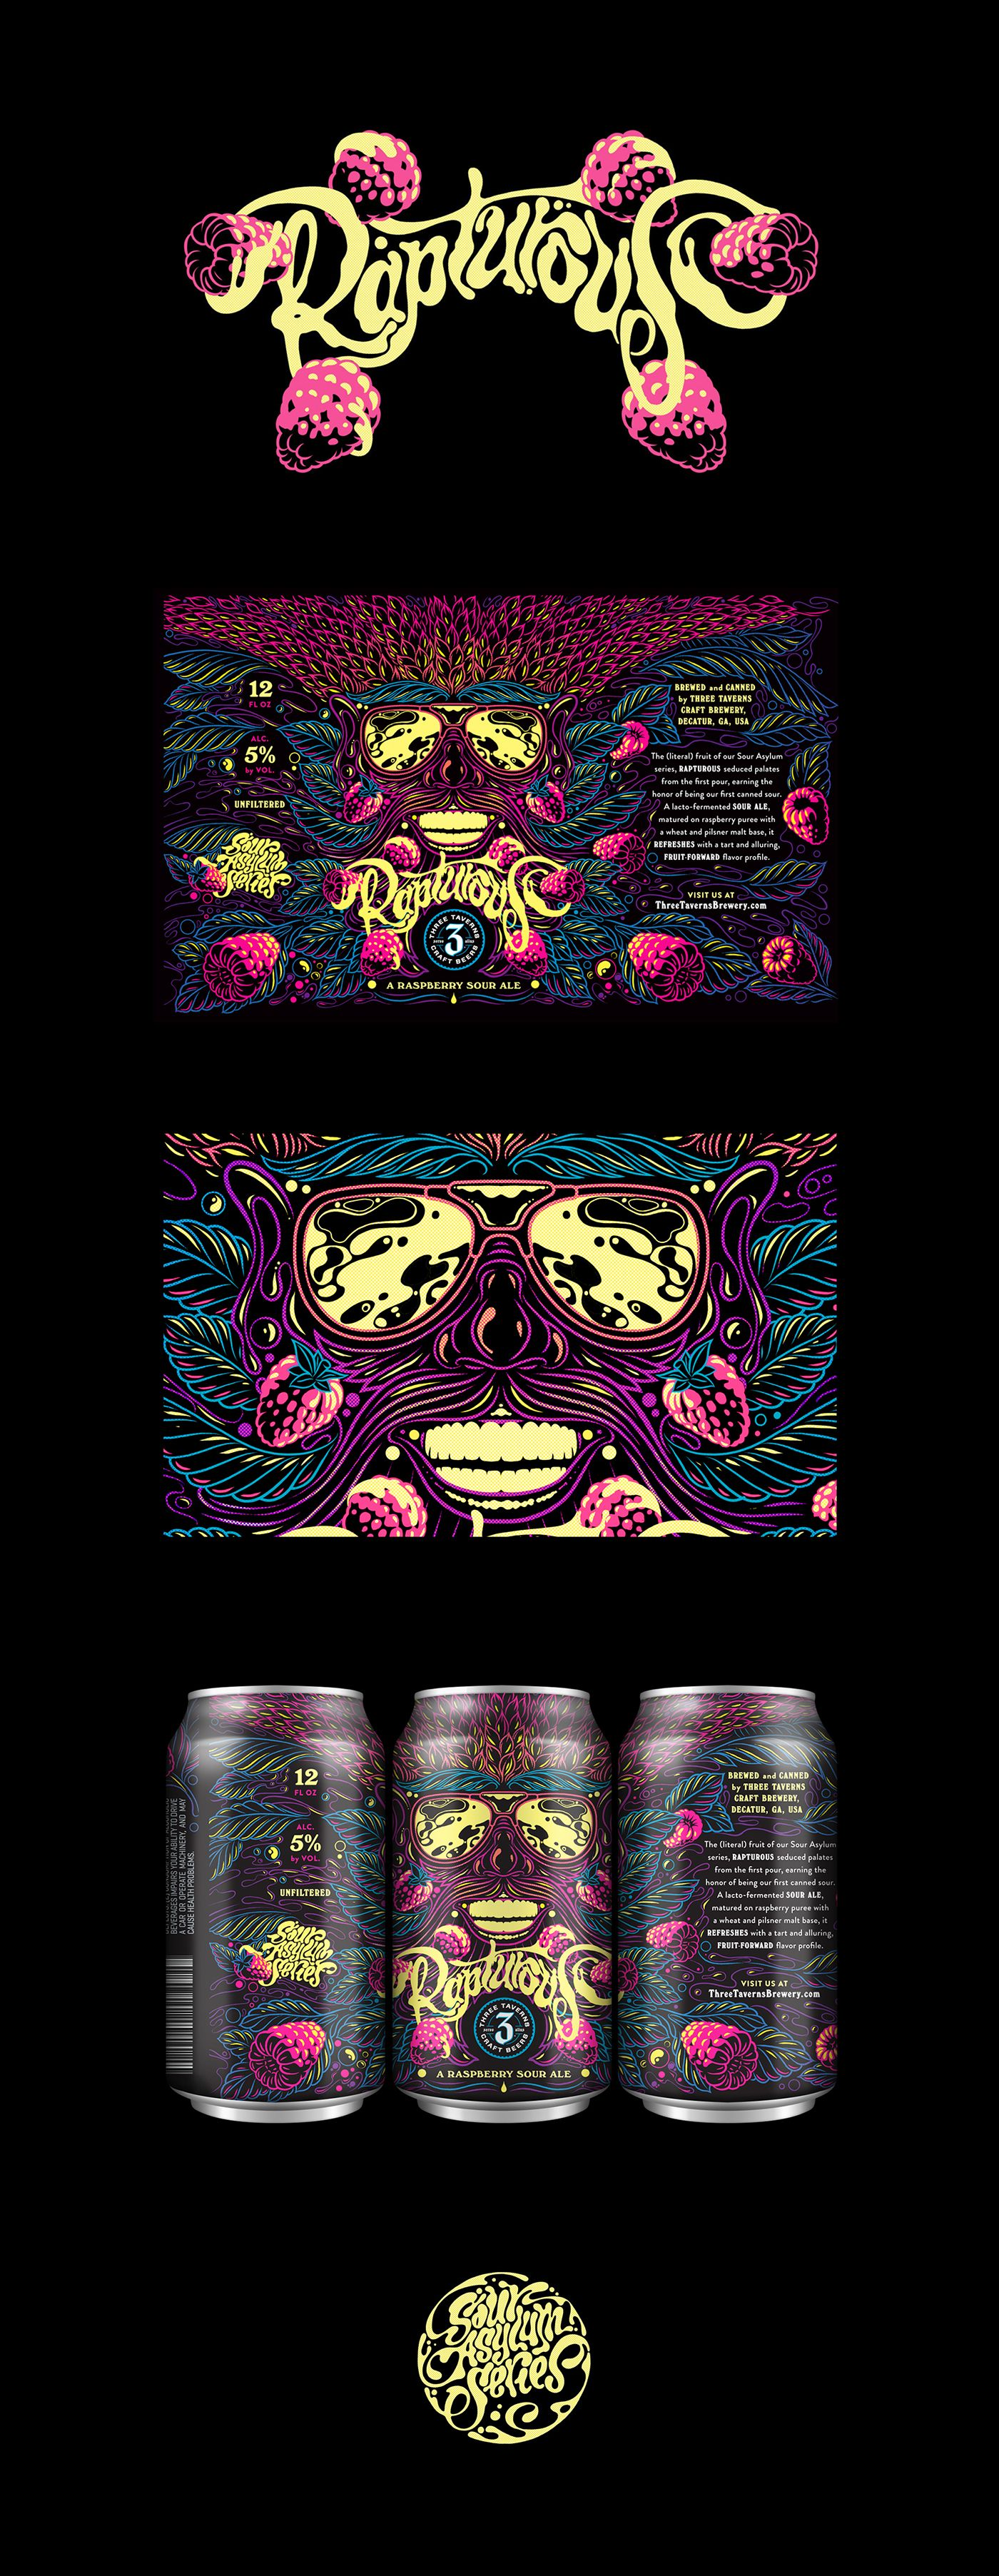 We worked with Atlanta-based agency Metaleap Creative to develop the illustrated packaging for Rapturous, a raspberry sour ale. This is one of Three Taverns Craft Brewery's new Sour Asylum series of lacto-fermented sour ales.